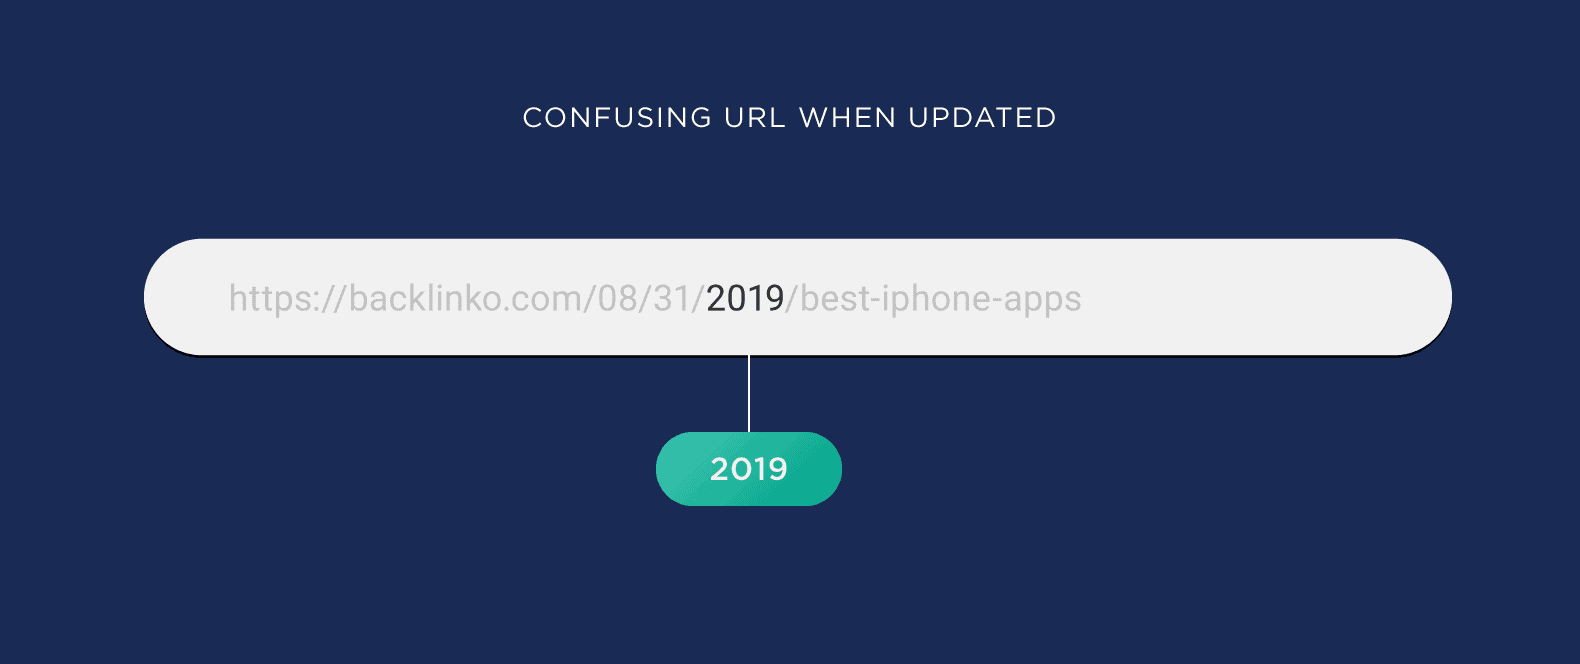 Confusing URL when updated